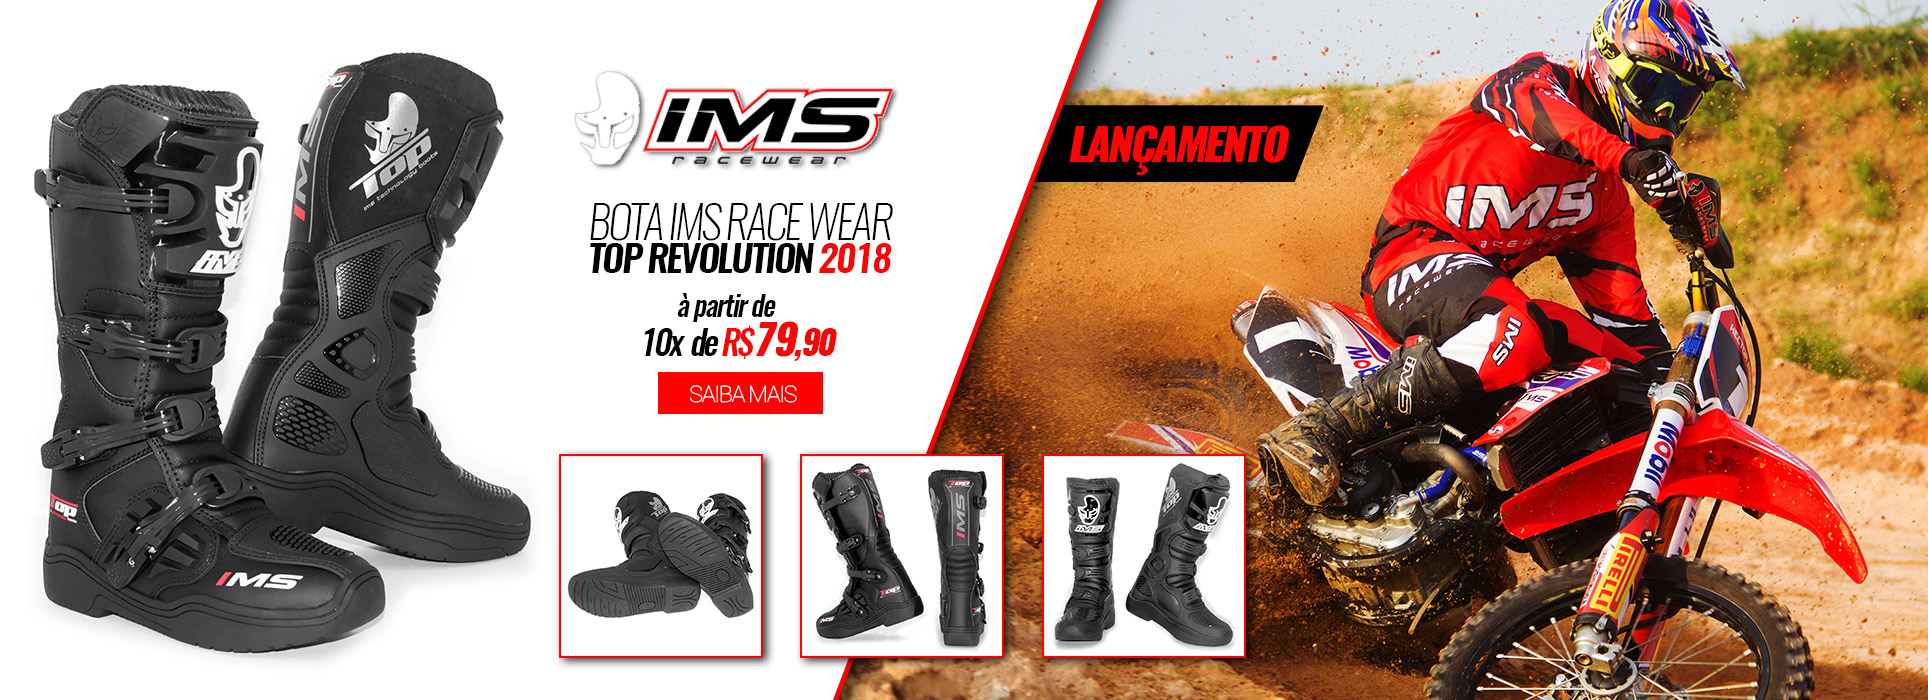 bota-ims-top